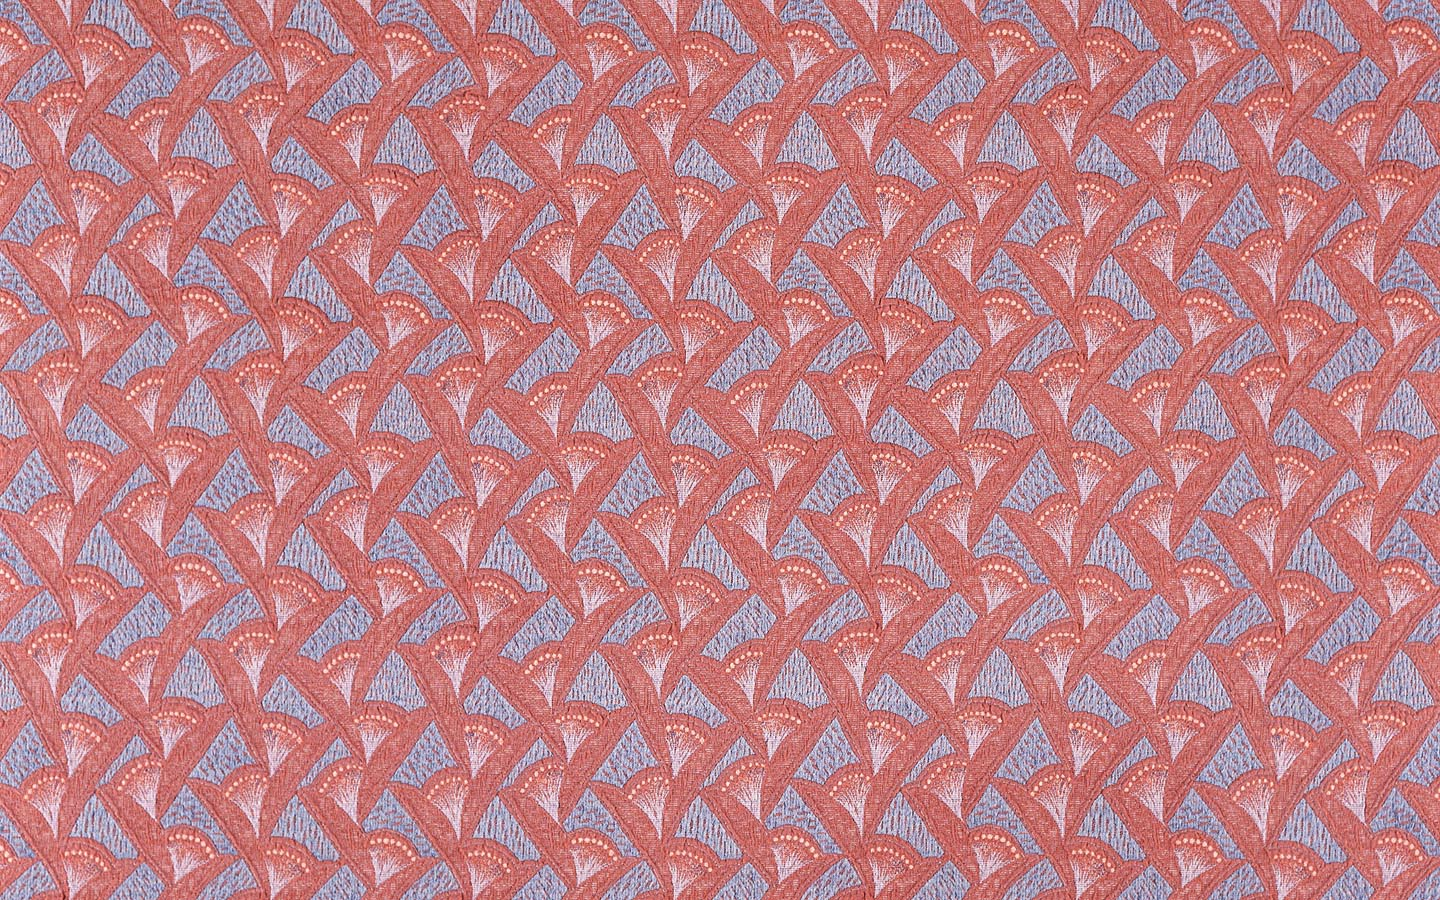 Fabric texture 13340